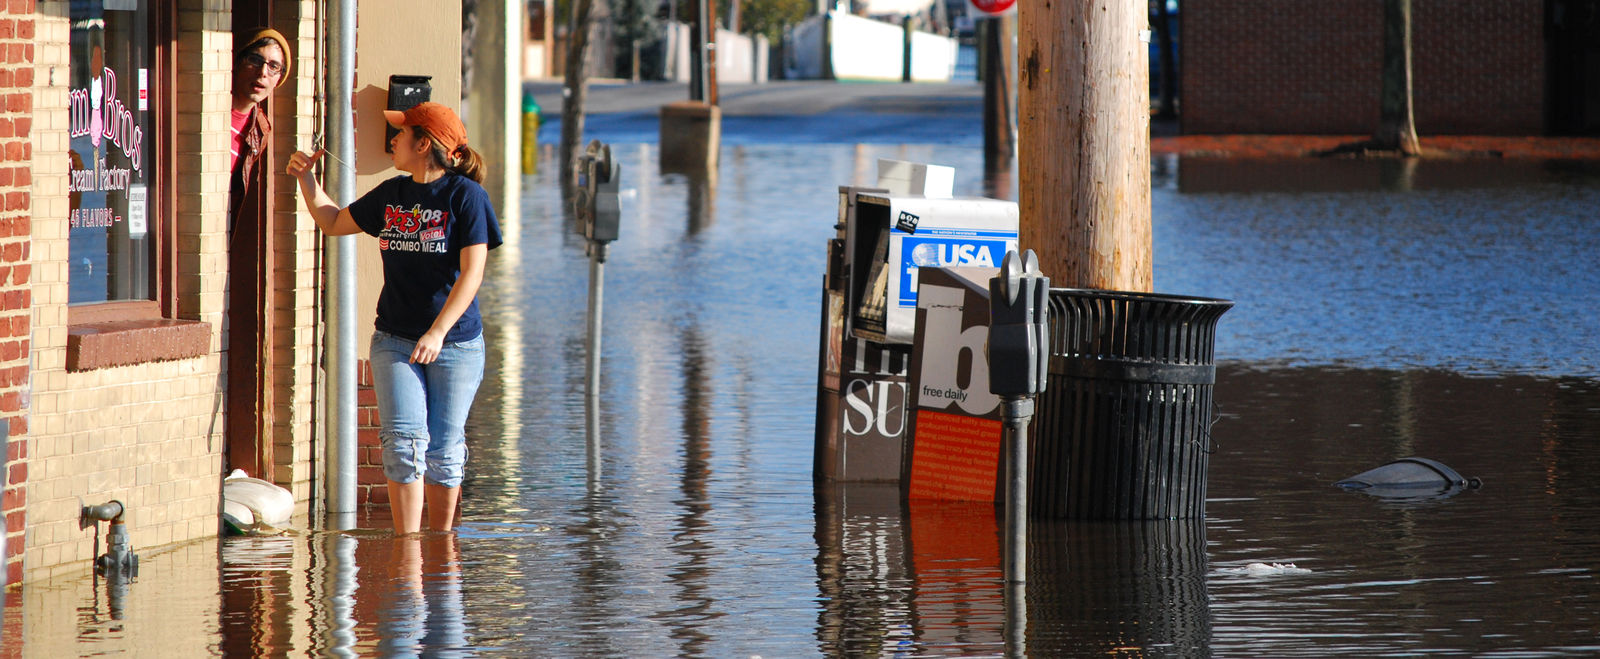 A woman stands in a town center with flooded streets and sidewalks.